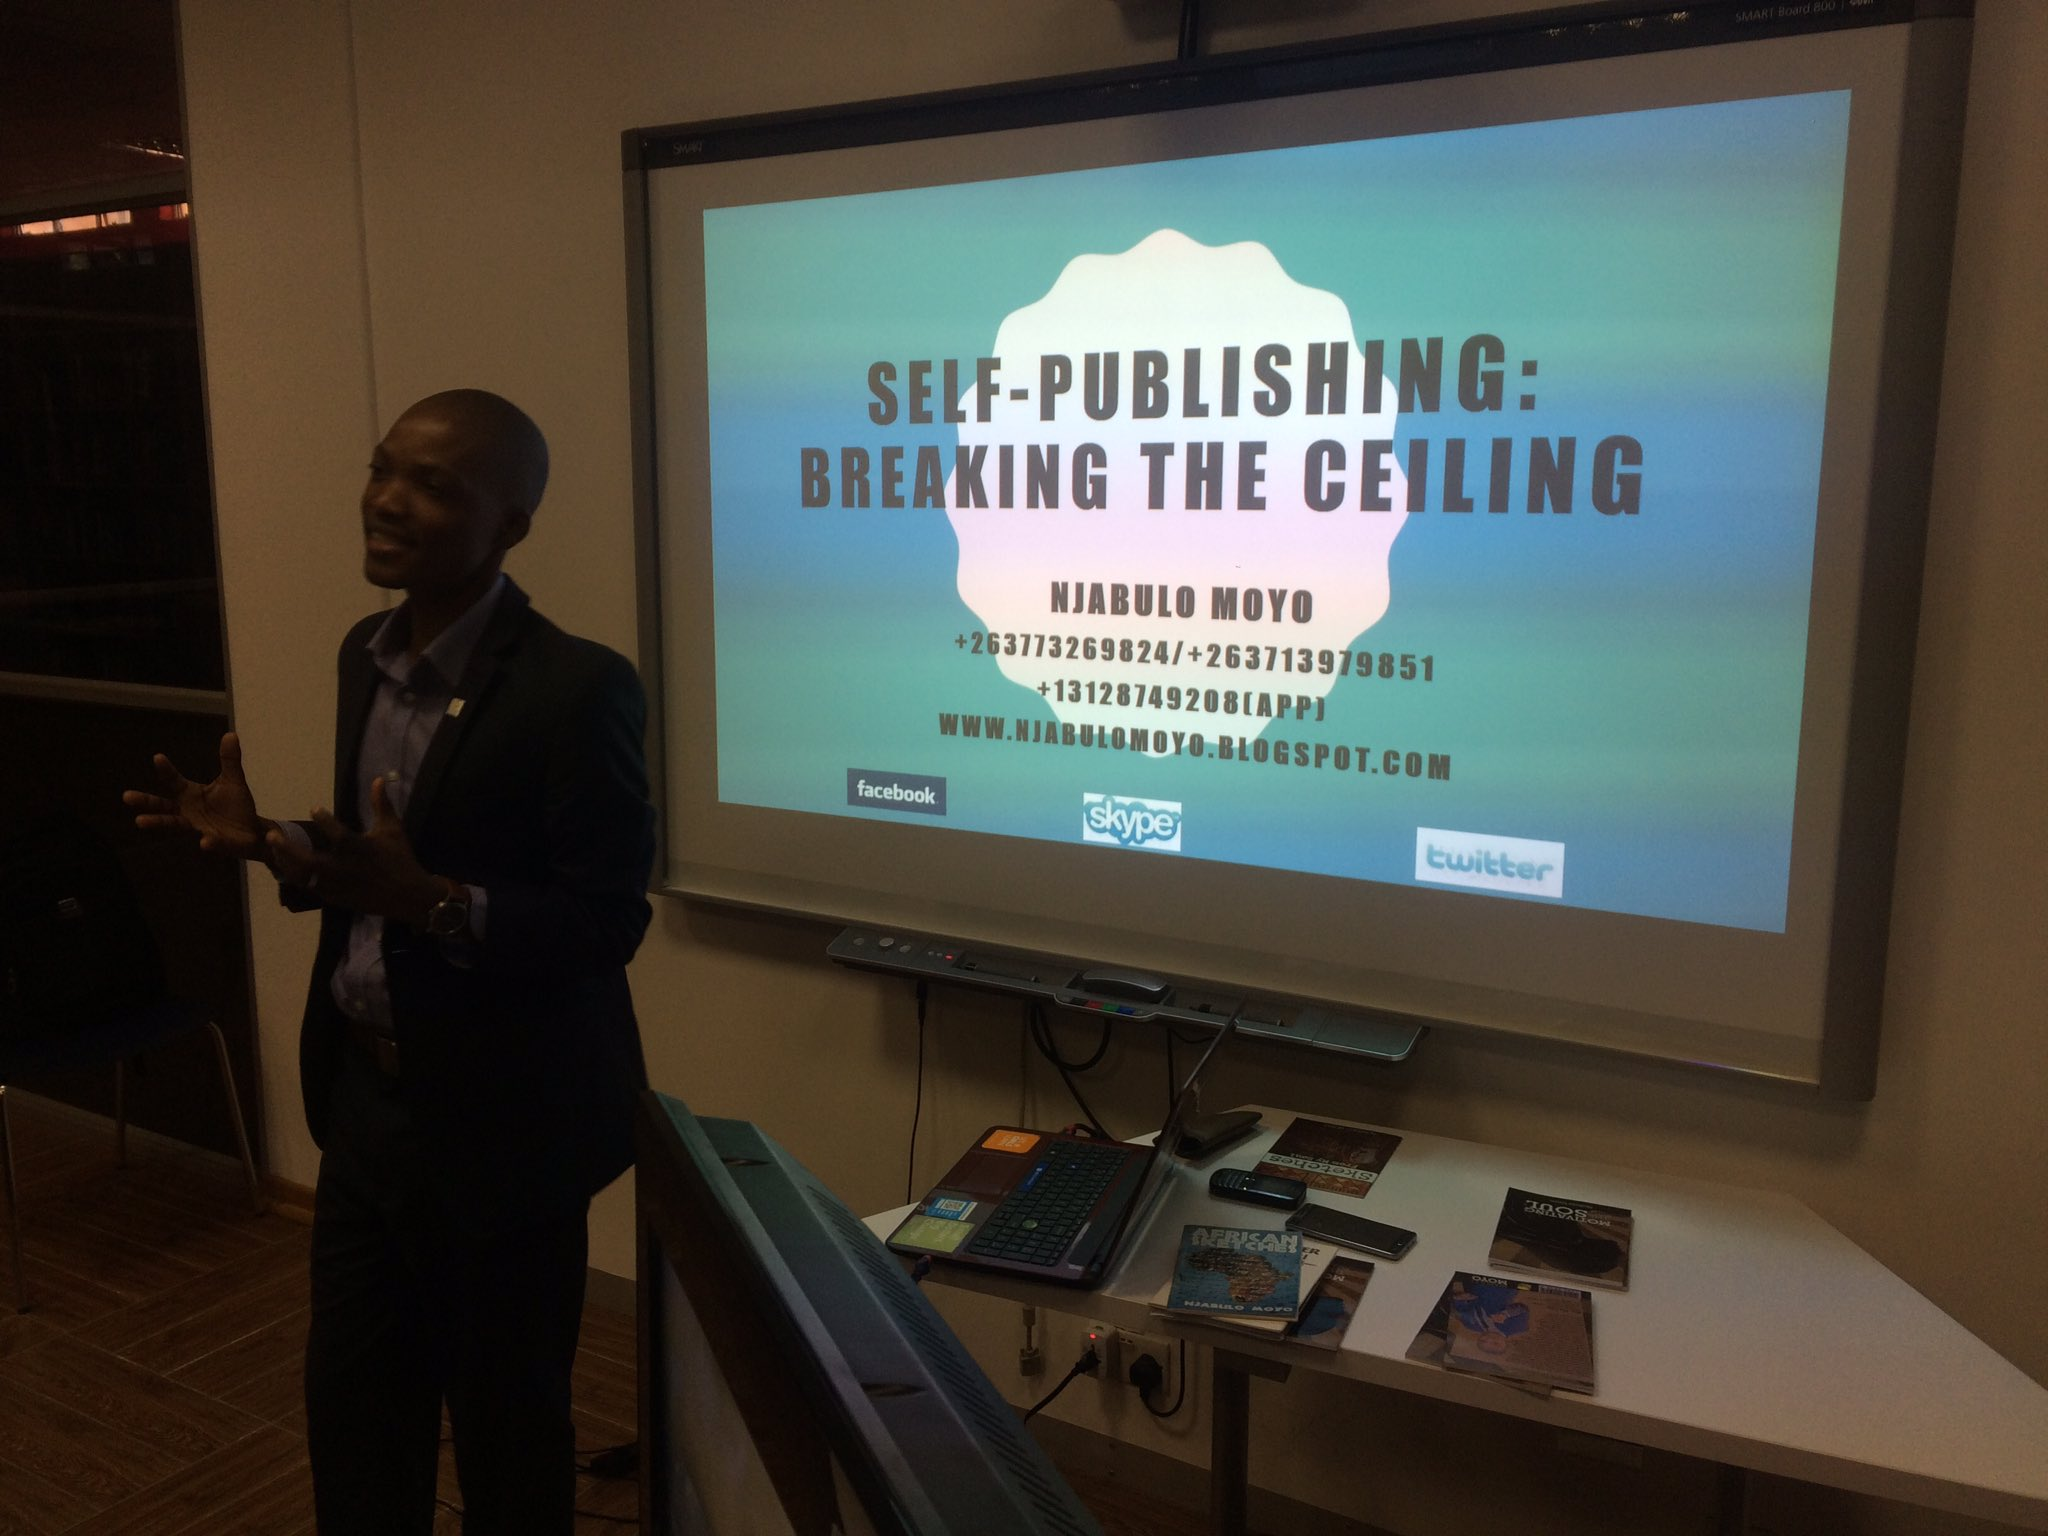 @njabulomoyo Self Publishing Breaking The Ceiling #jumpstartbyo https://t.co/dJlKhRbttq